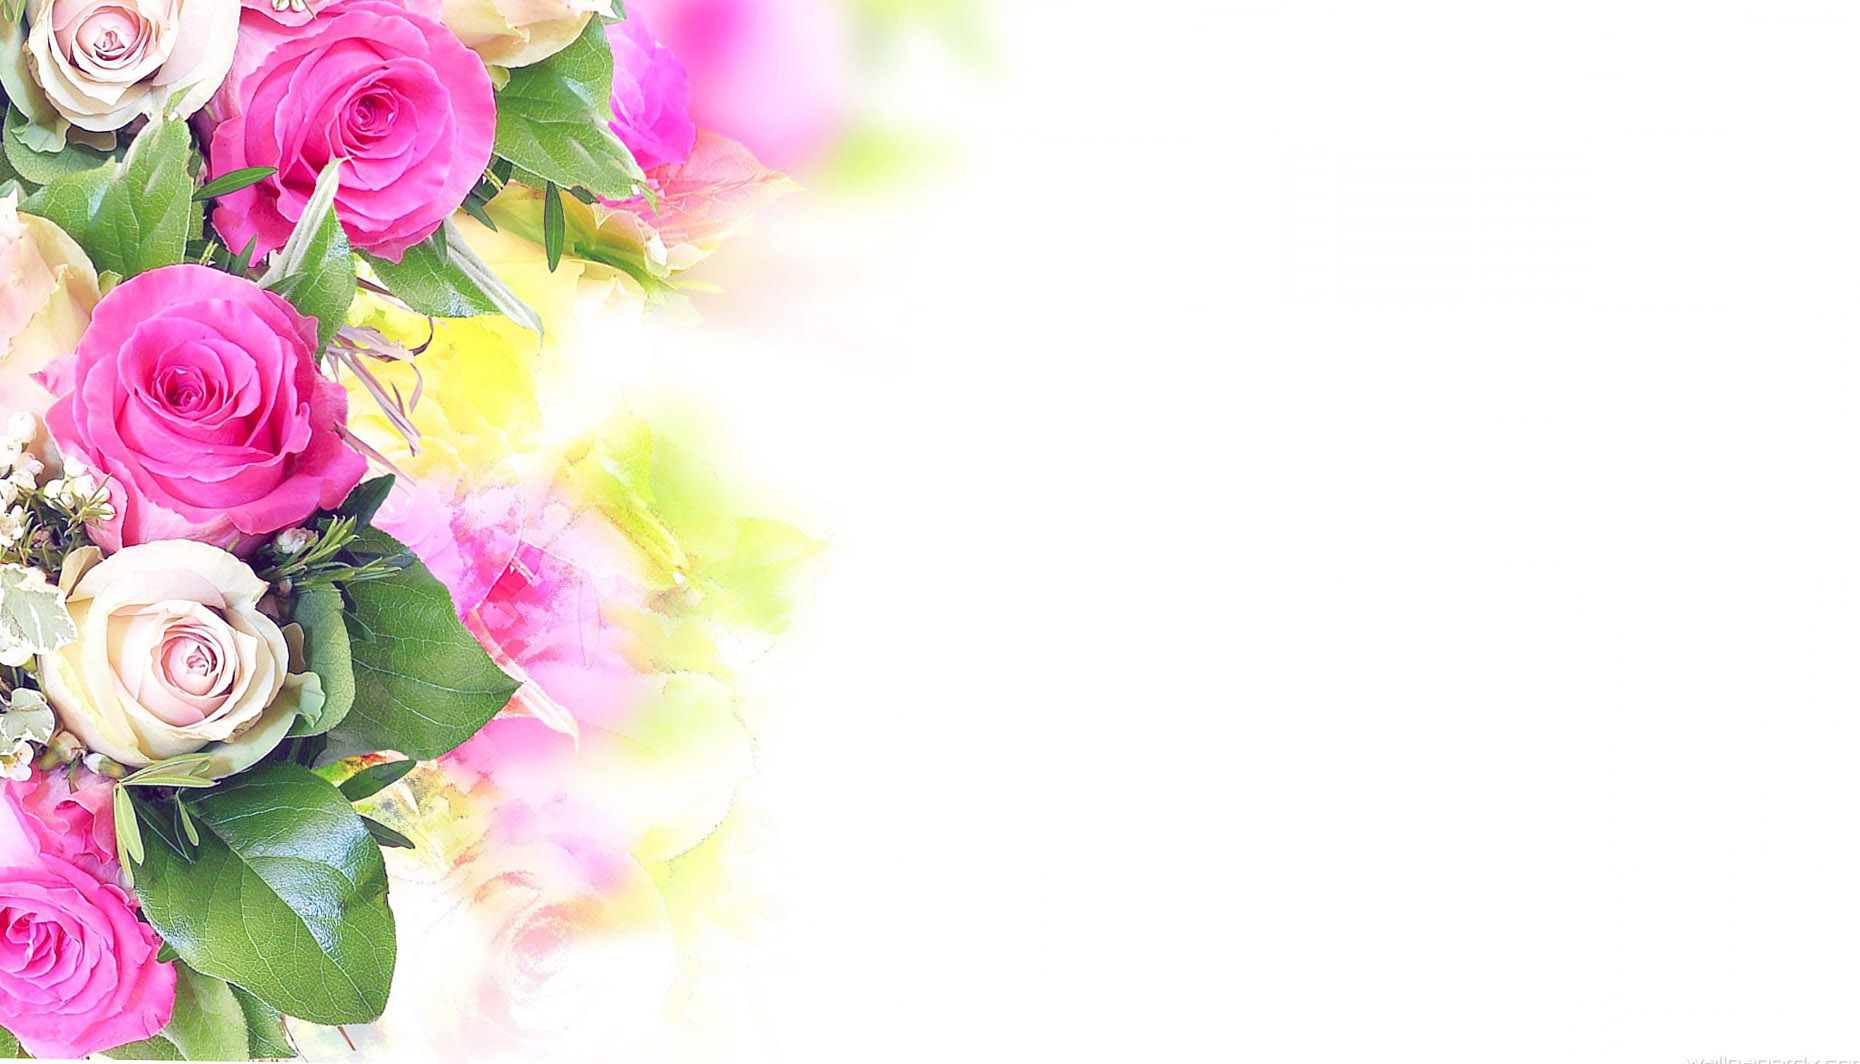 Flower Background Hd Wallpaper - Hd Flower And Background White , HD Wallpaper & Backgrounds